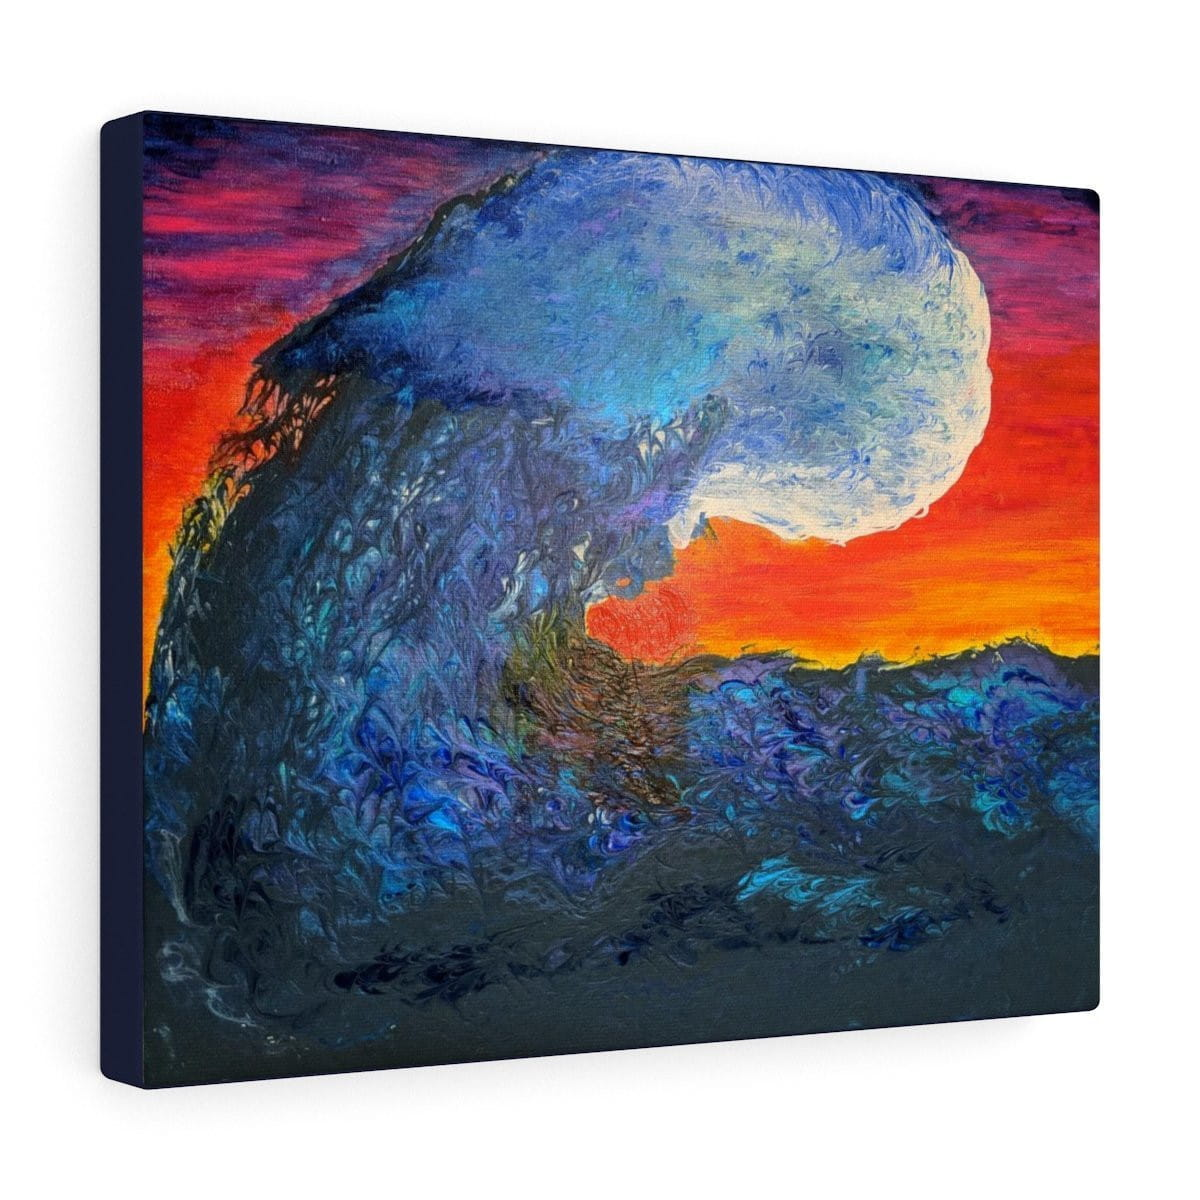 Crashing Wave - Canvas Gallery Wraps - Fiercely Fem